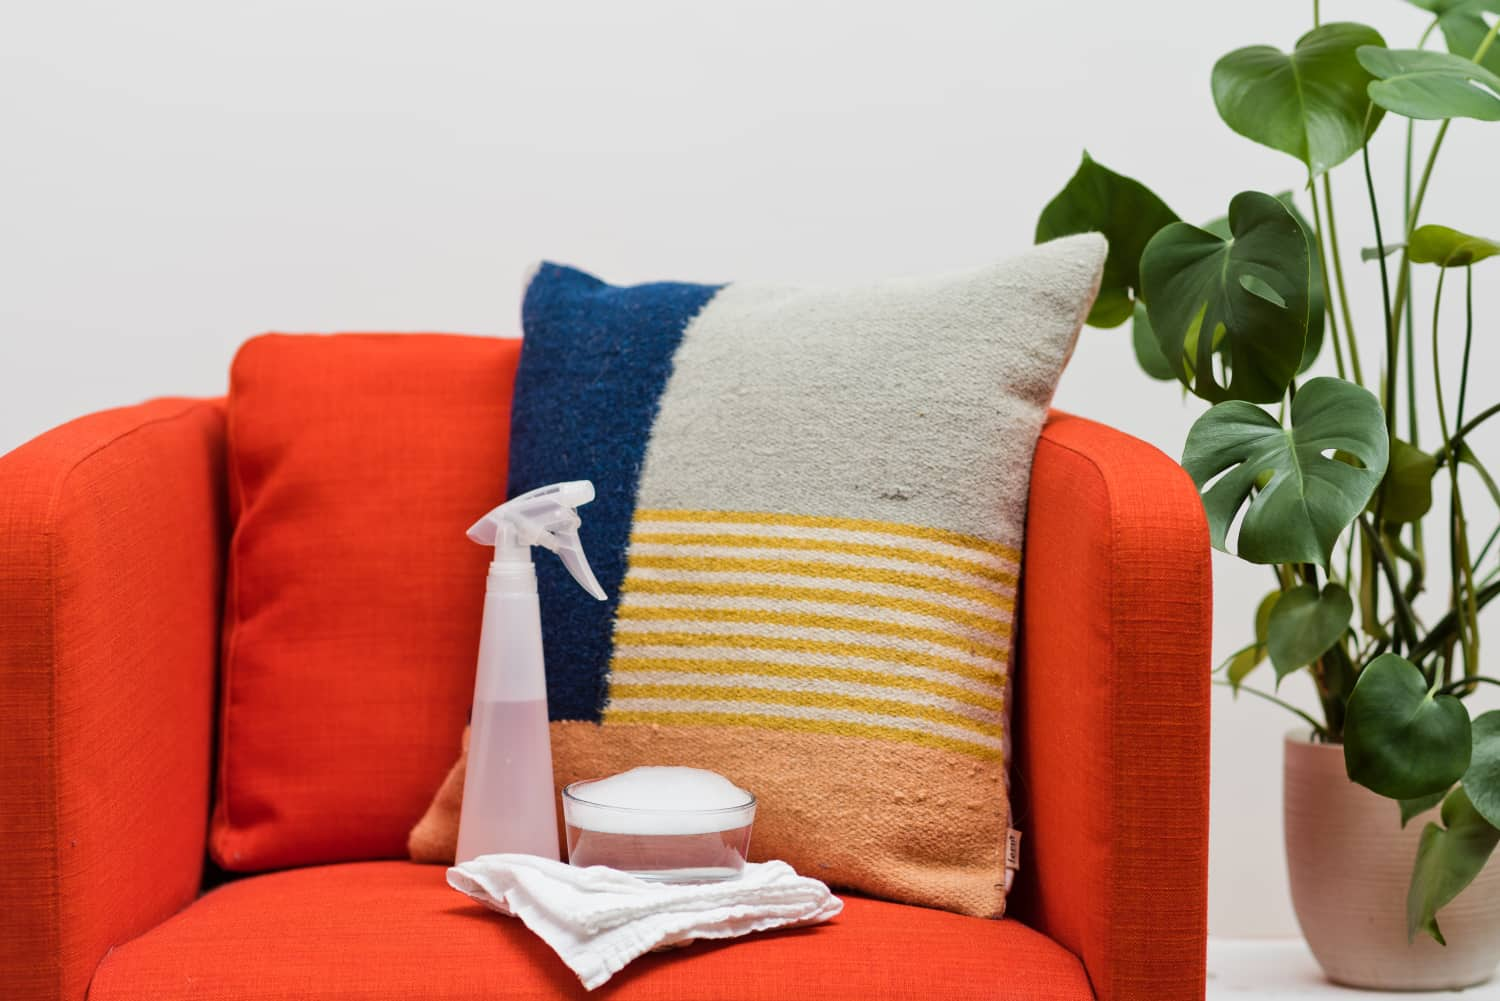 How To Spot Clean Old Or Set In Upholstery Stains